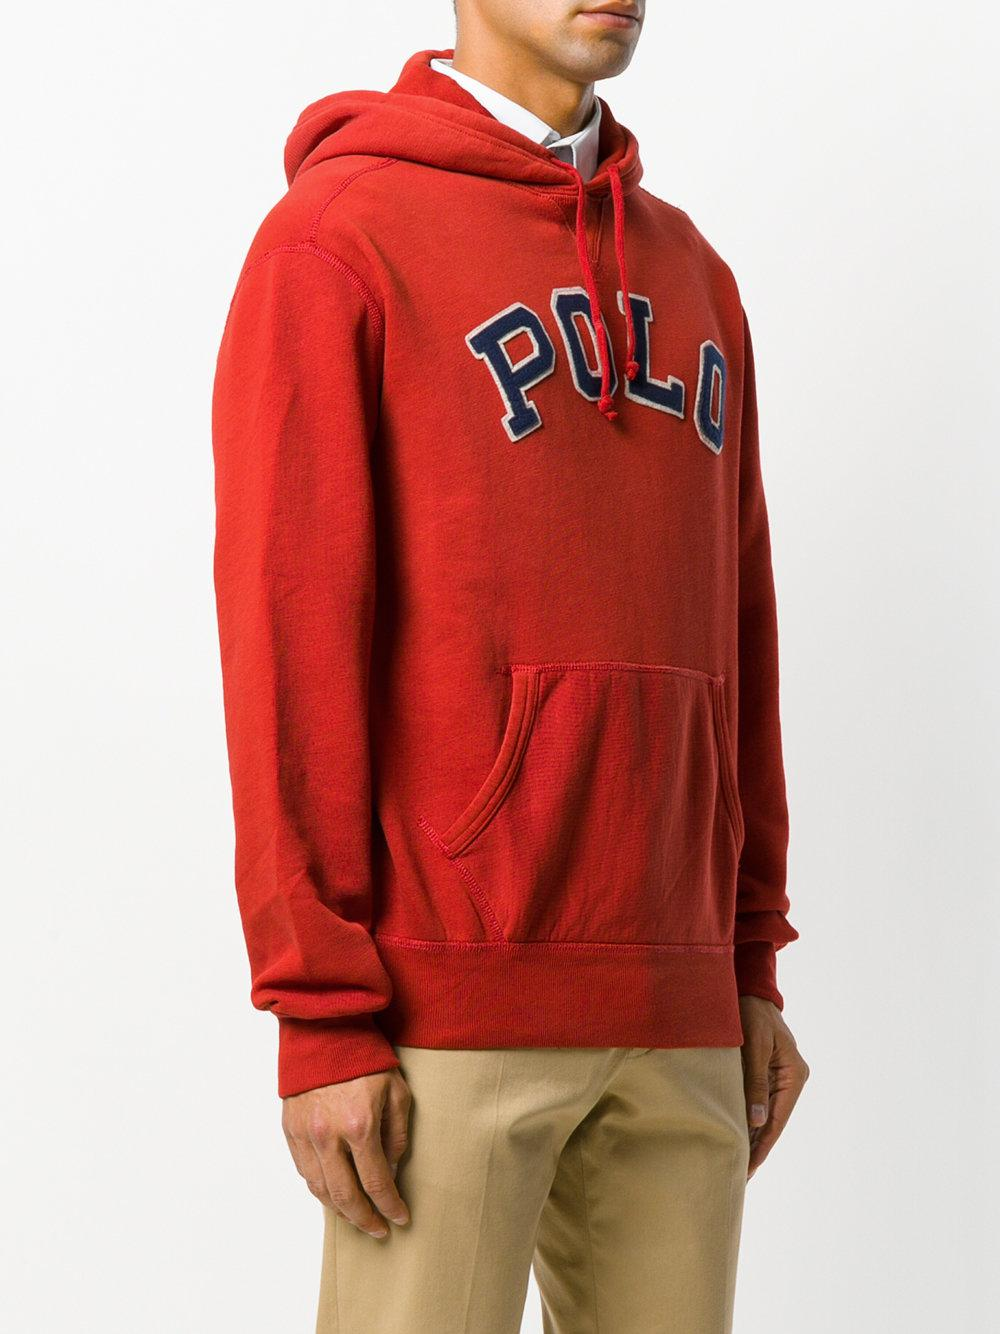 Red polo hoodie